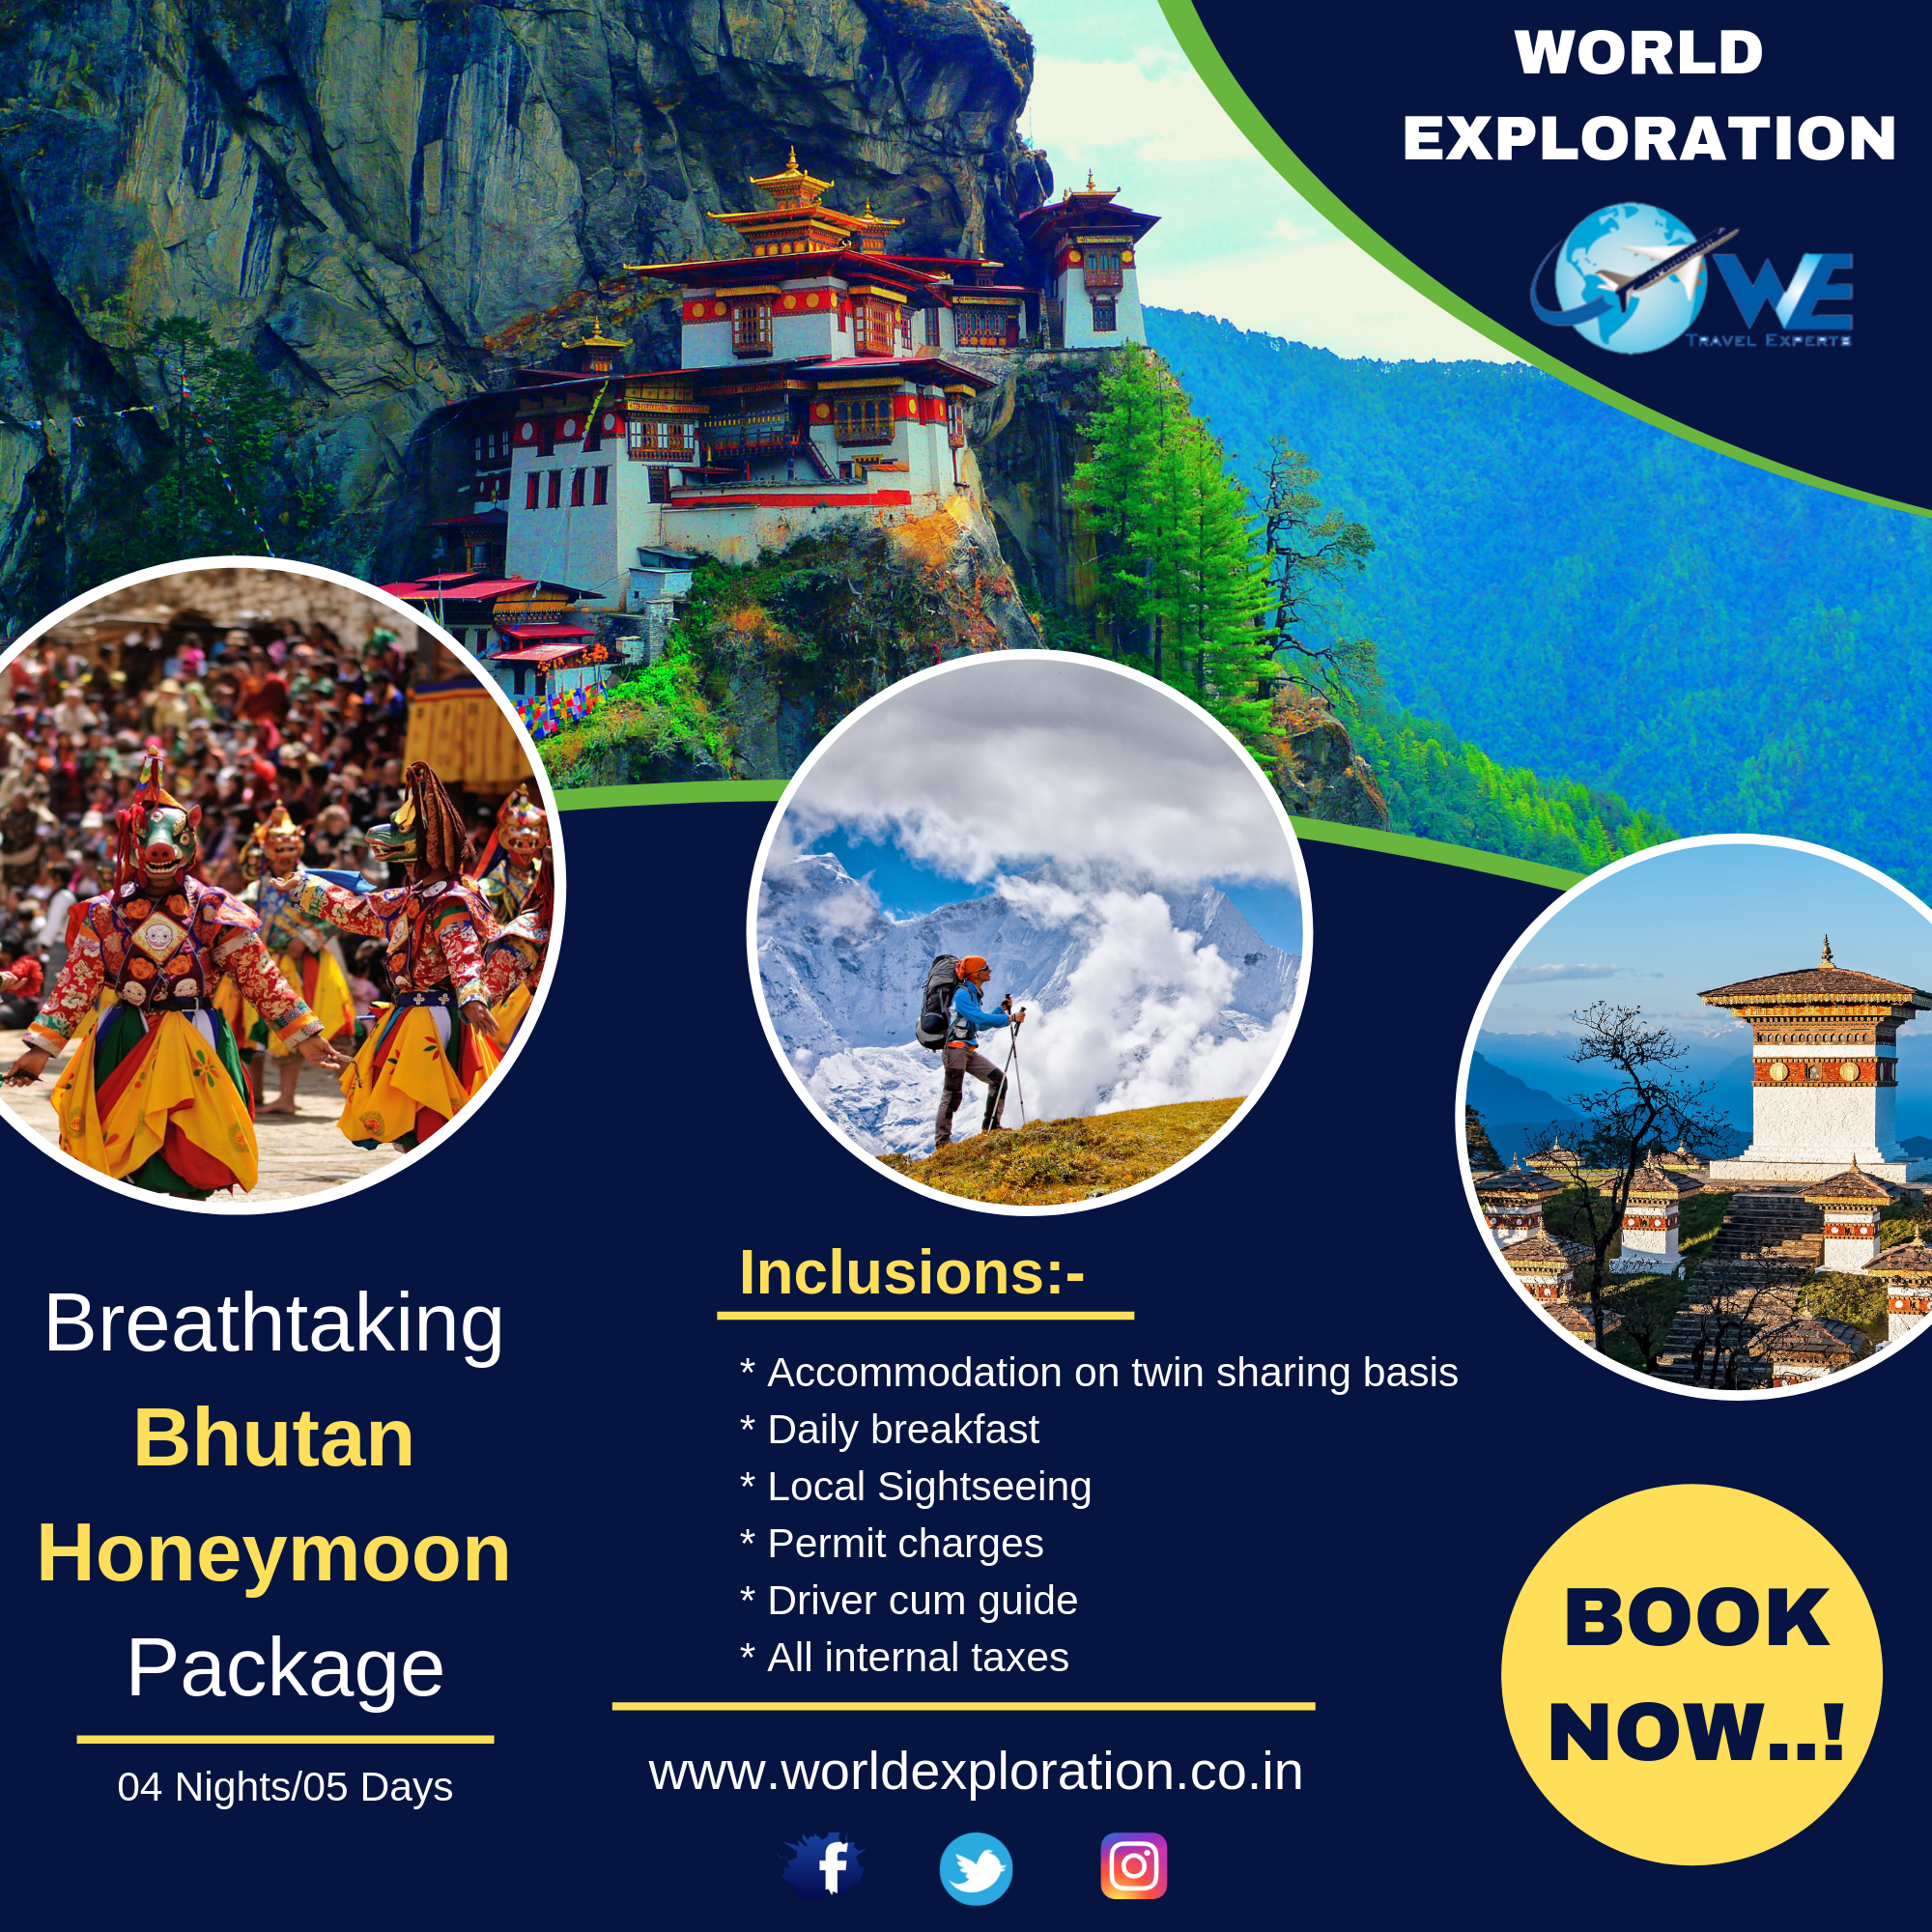 Bhutan is also one of the most romantic places to visit